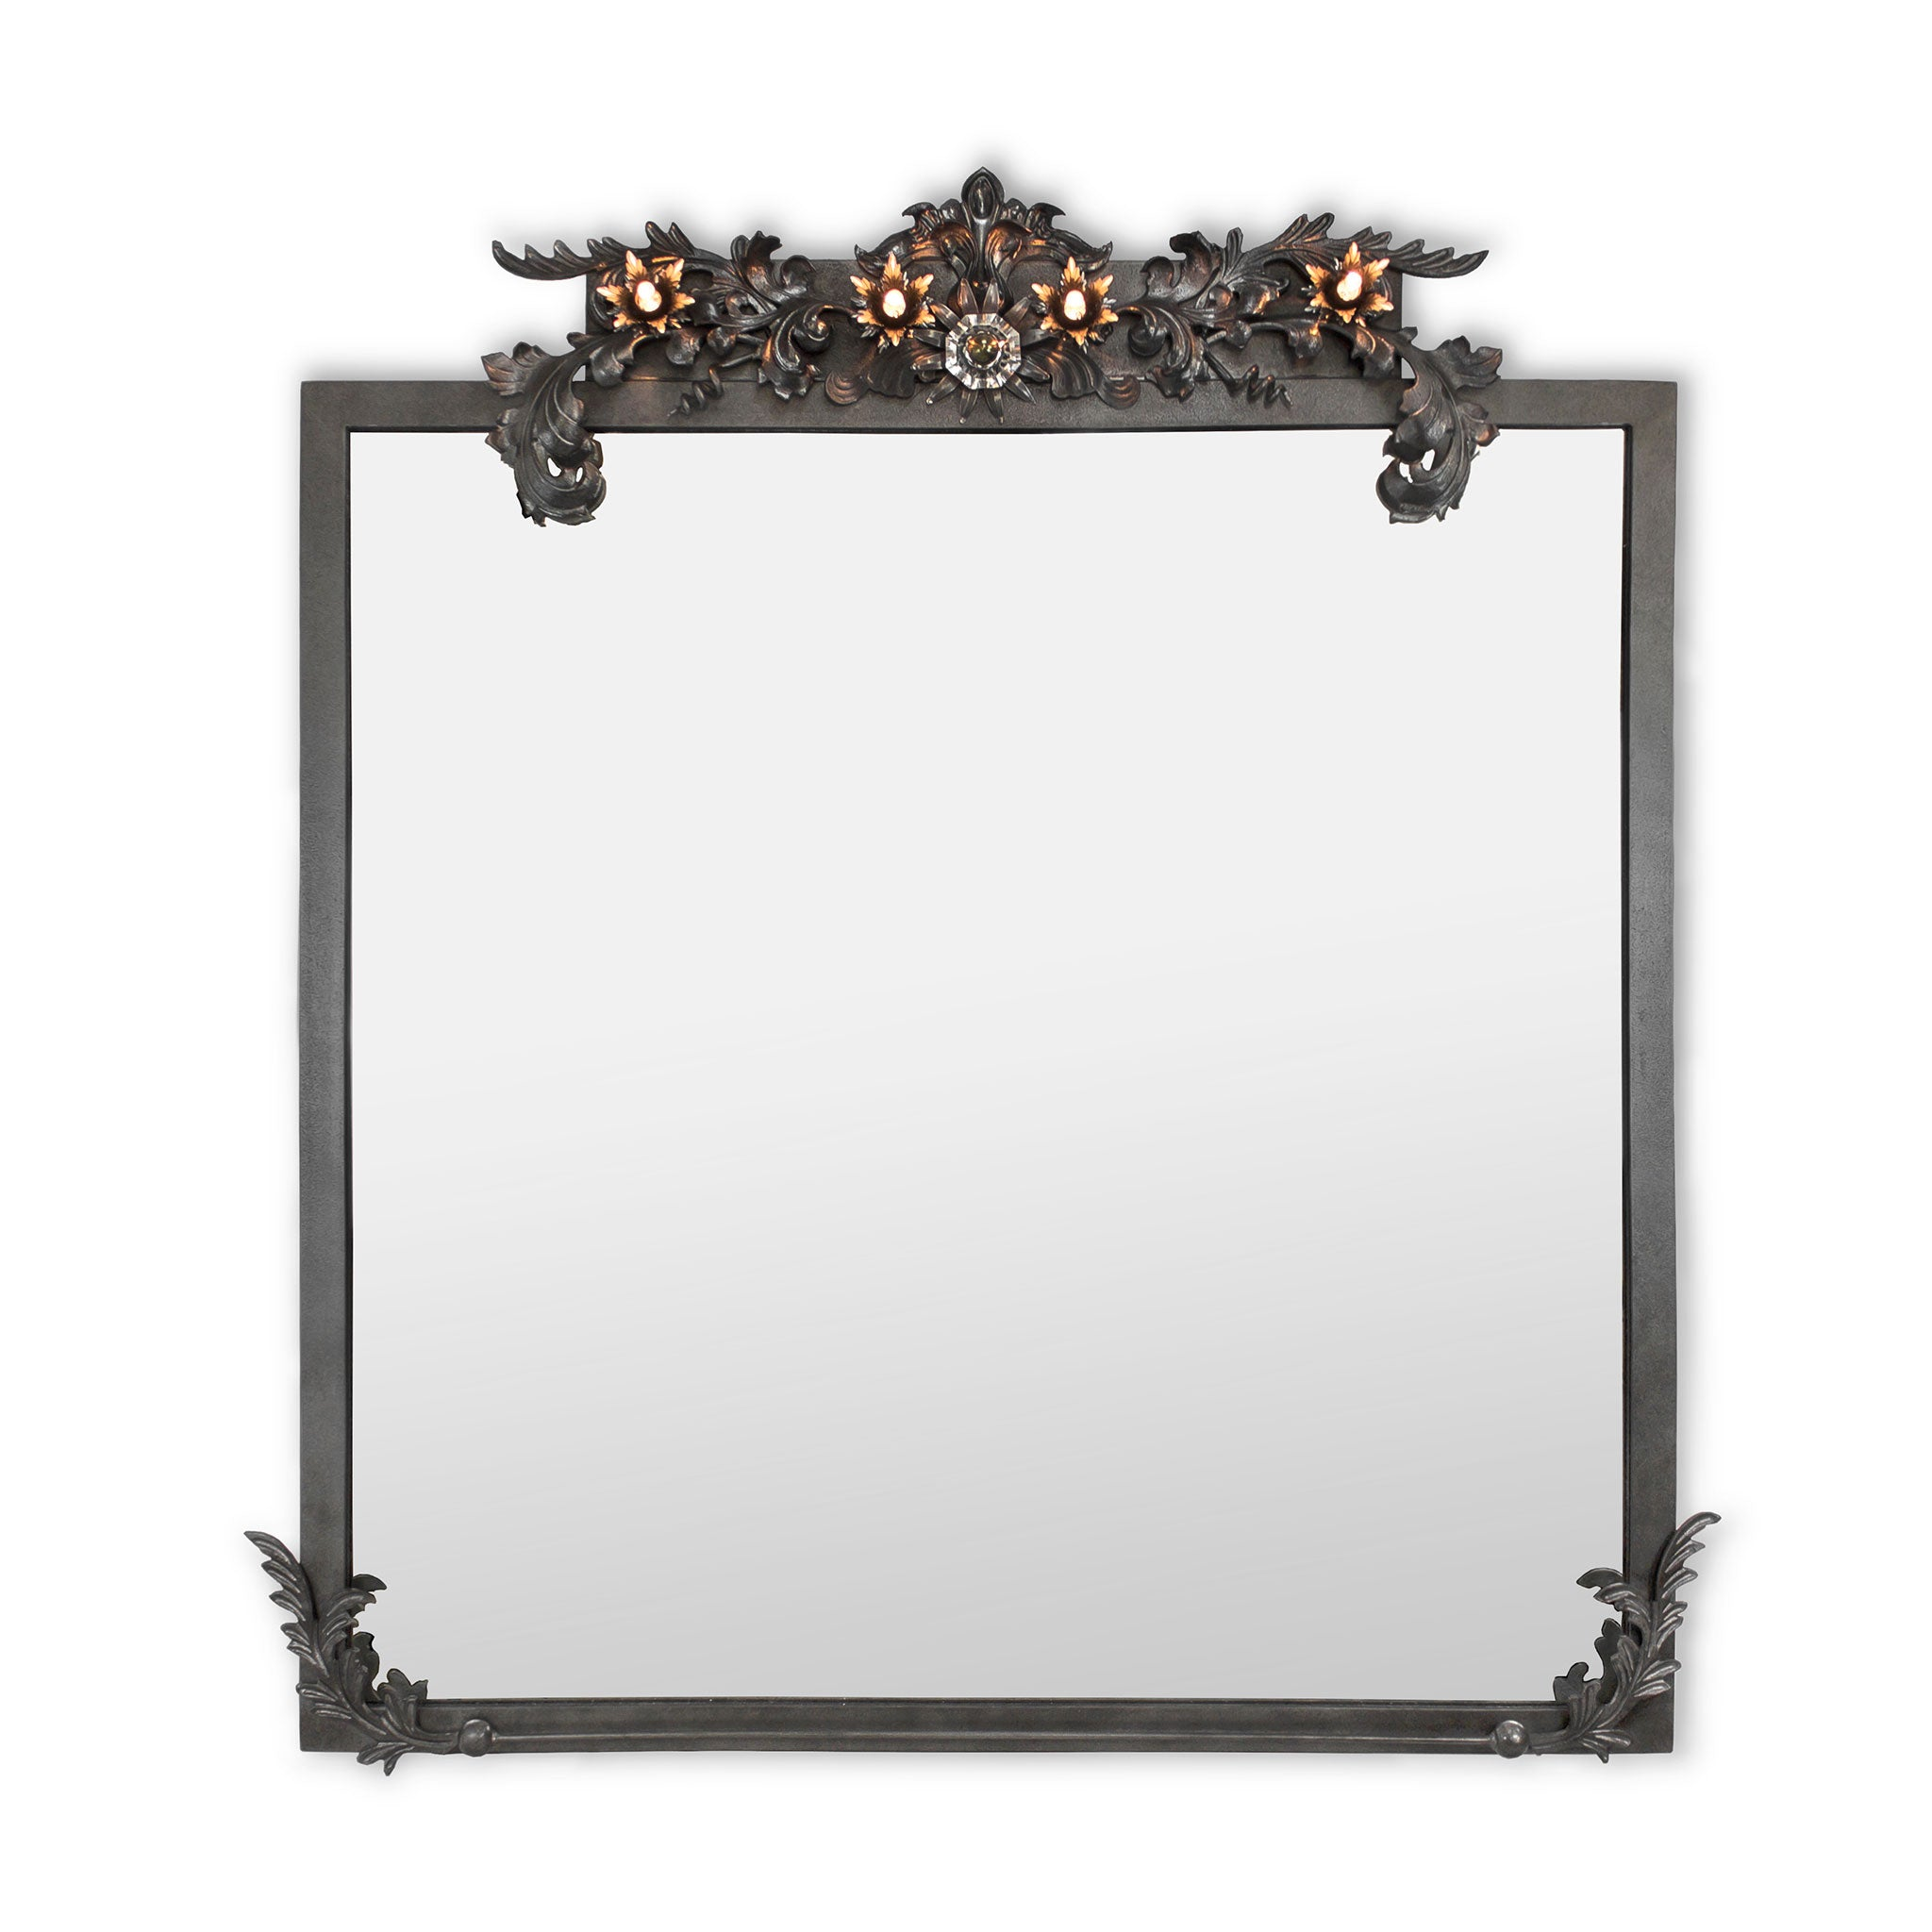 Florette Mirror with Halogen Lights, Forge Iron, Finish Blackened Steel by Luna Bella